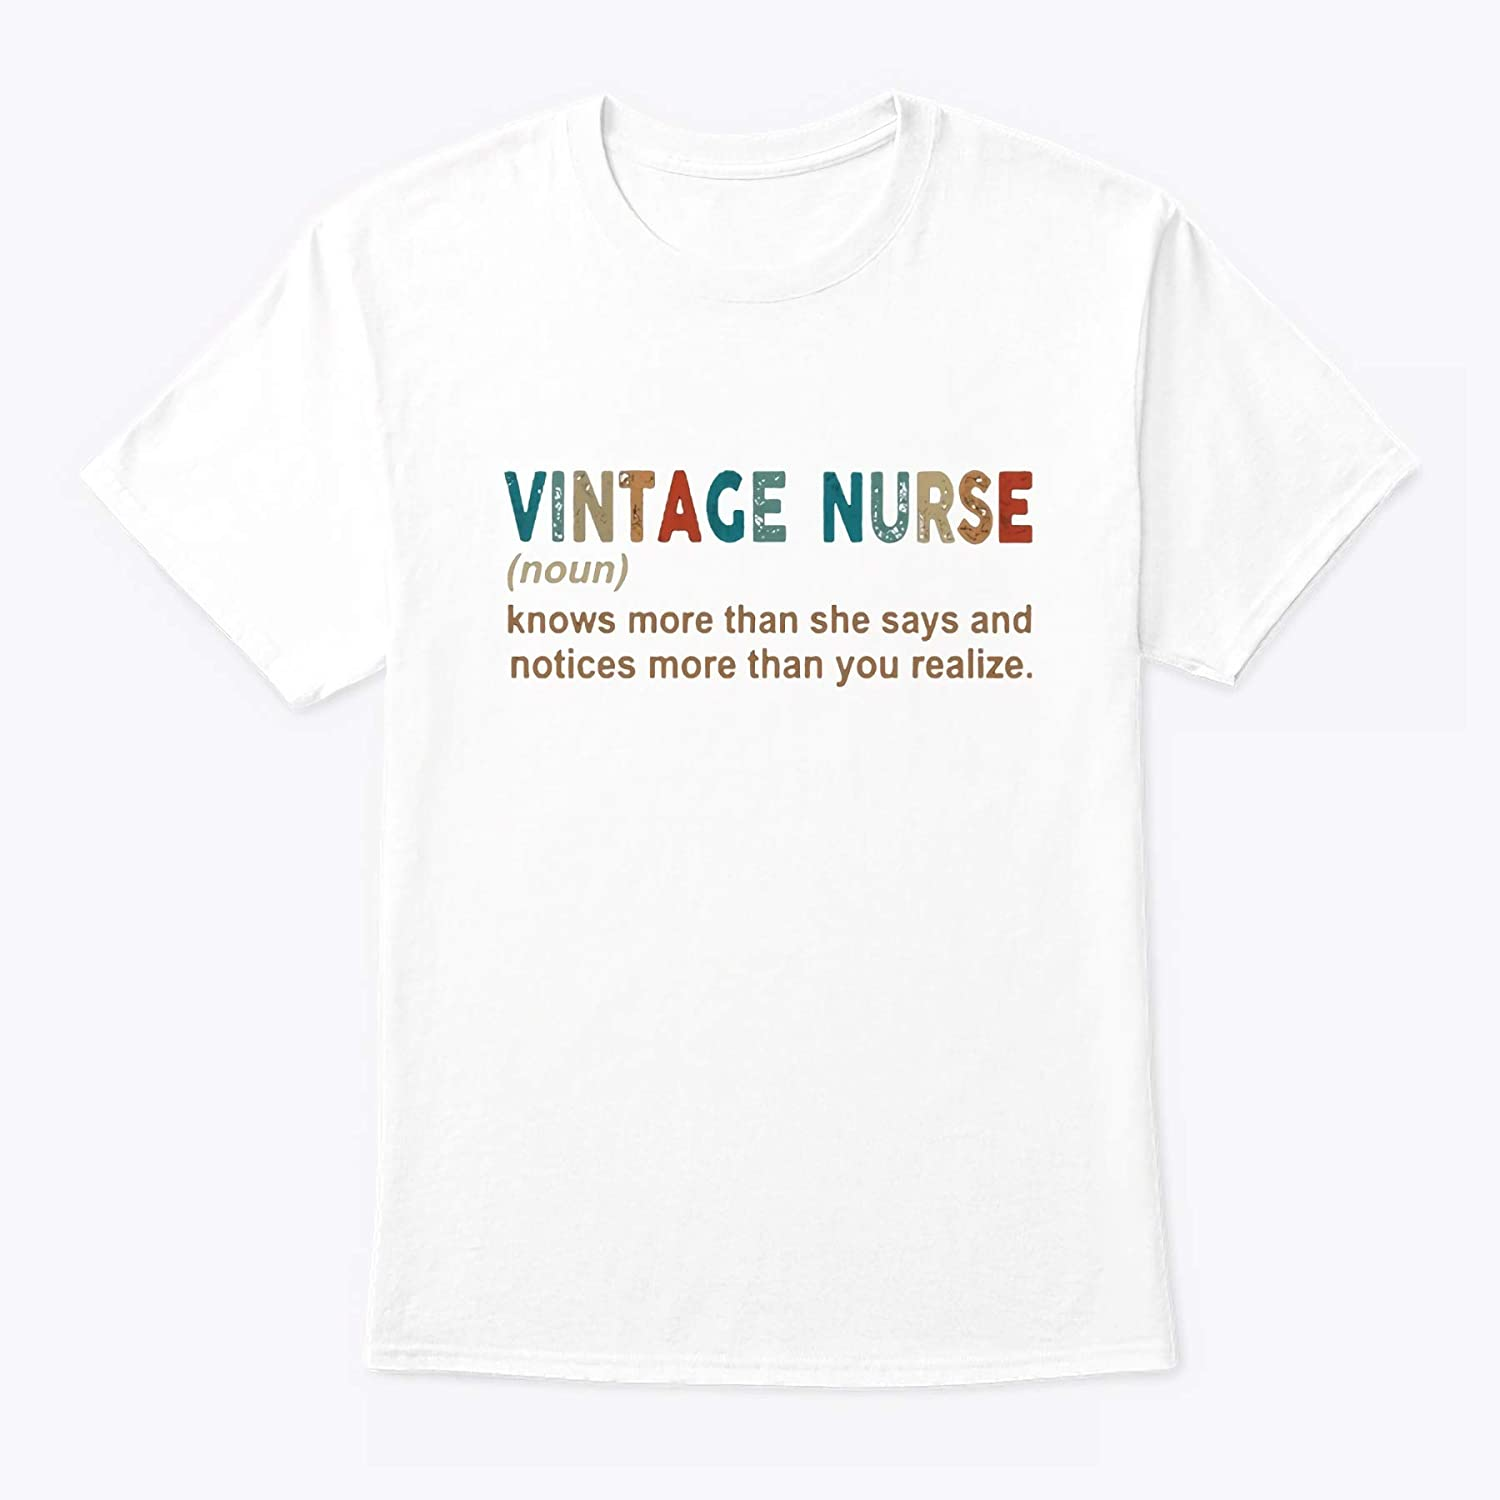 Diana Lysa Im The Psychotic Auntie Nurse Everyone Warned You About T-Shirt Nurse